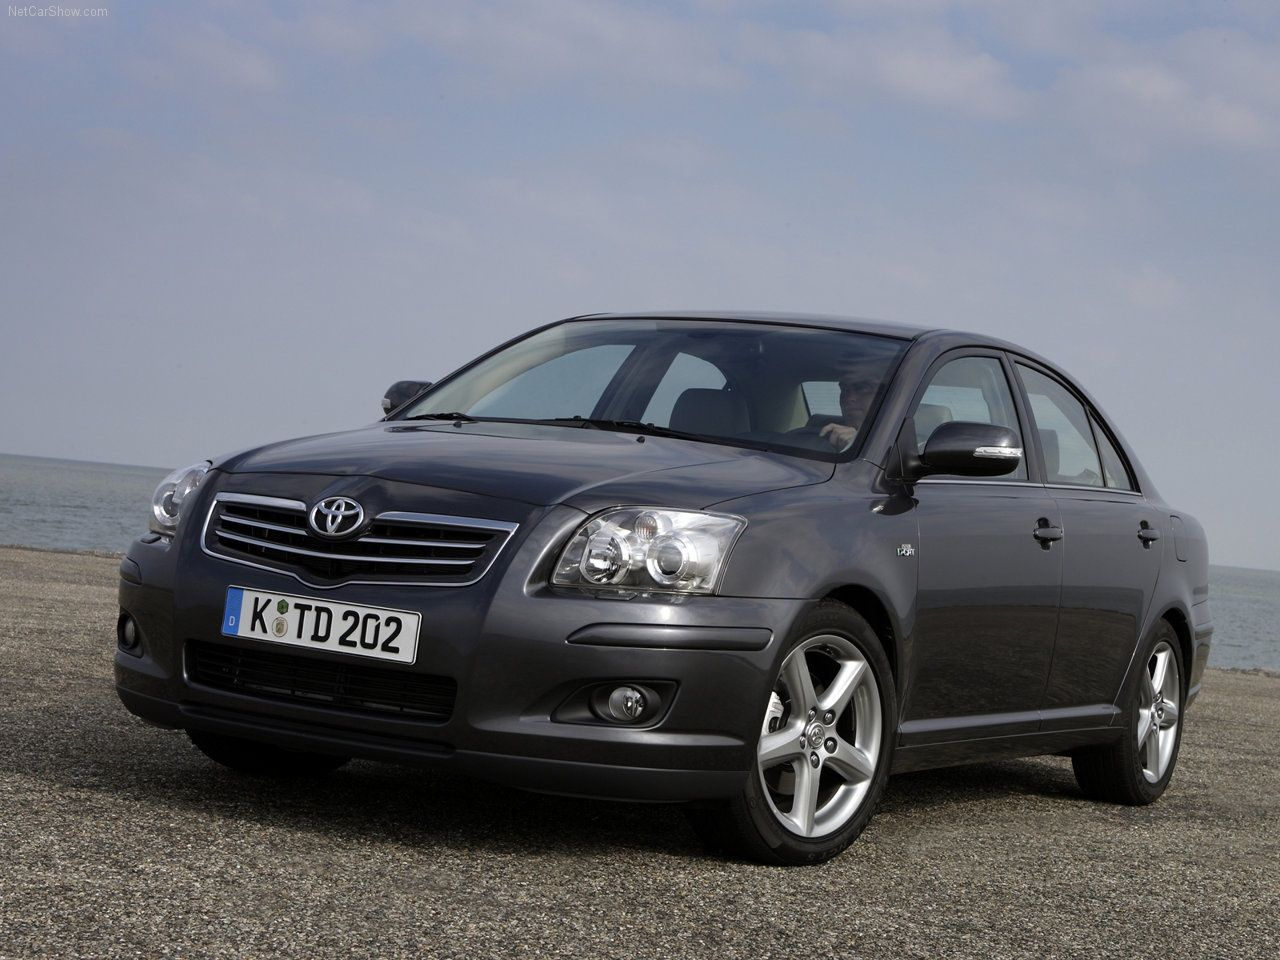 Enjoy Free Pdf Download Of 2002 2007 Toyota Avensis Electrical Alfa Romeo Giulia Super Wiring Diagram Diagrams This Manual Is Used In The Inspection And Repair Circuits